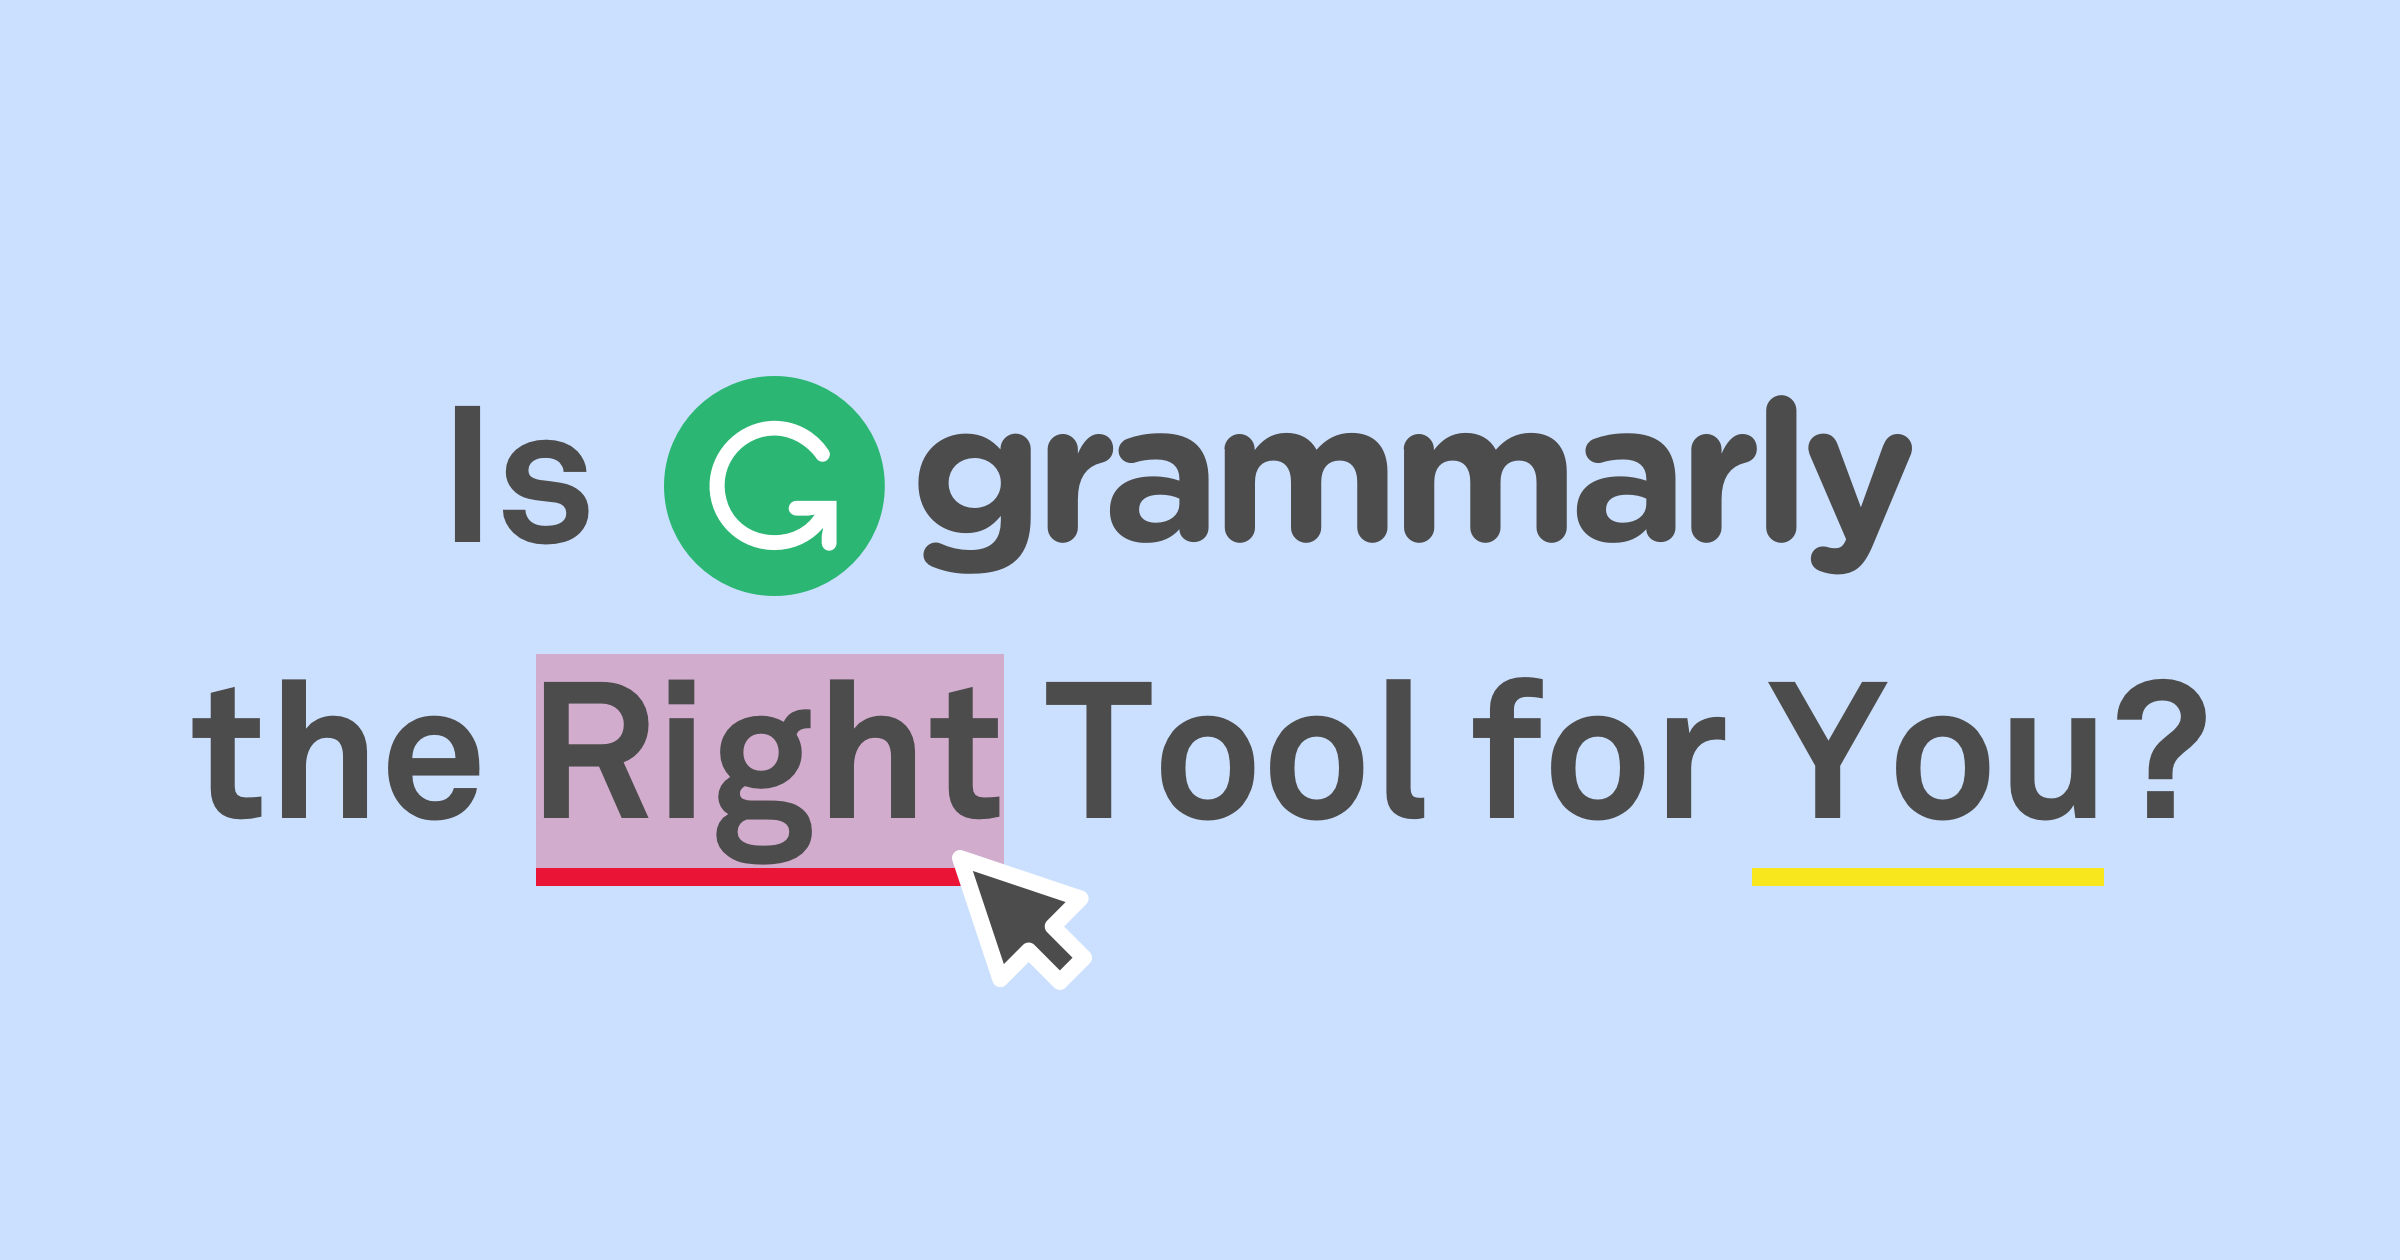 Dimensions In Mm Proofreading Software Grammarly